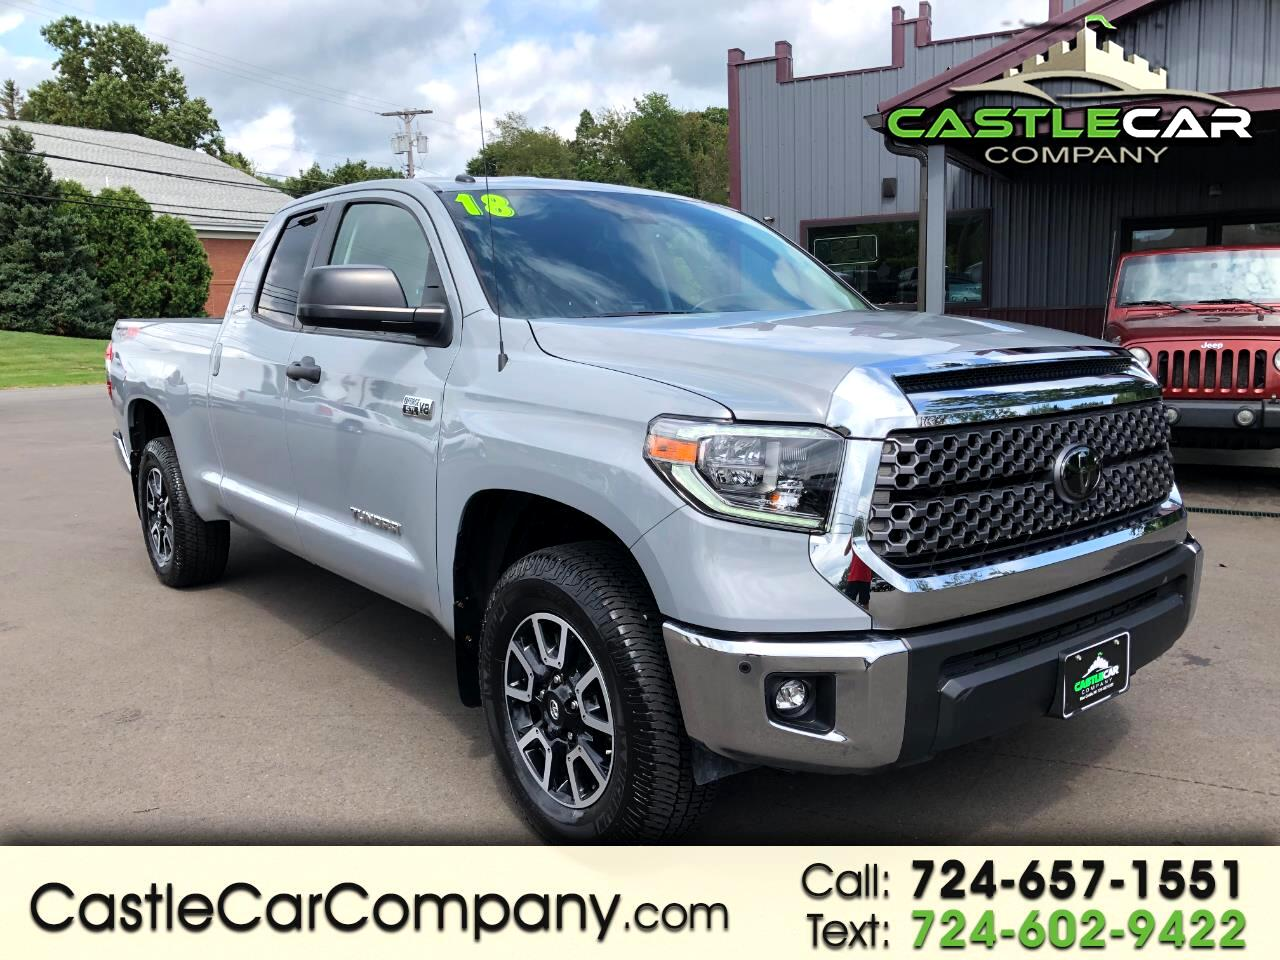 2018 Toyota Tundra 4WD TRD Pro Double Cab 6.5' Bed 5.7L (Natl)